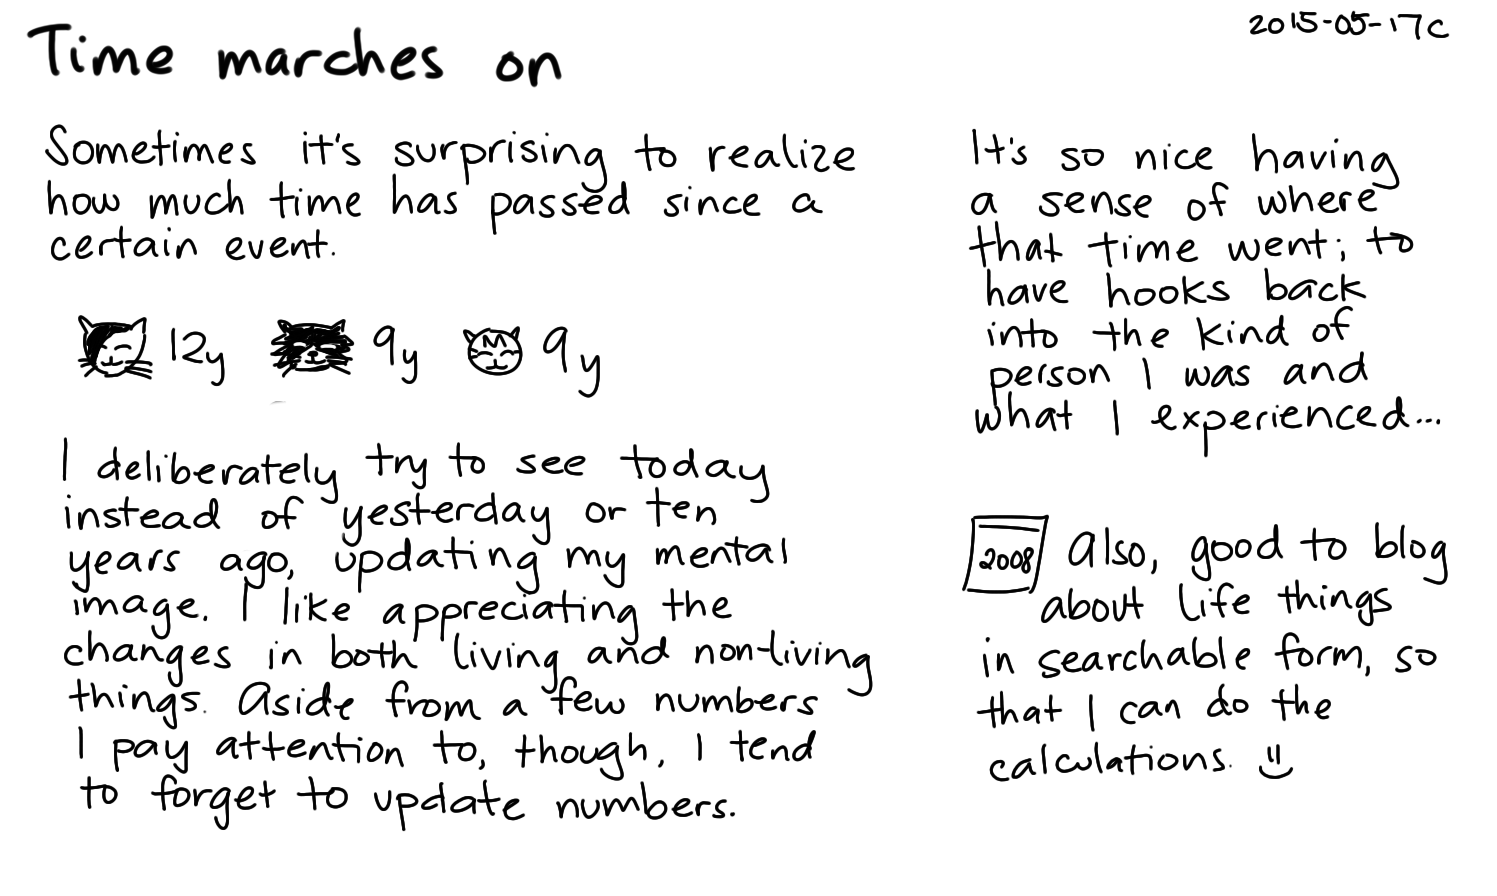 2015-05-17c Time marches on -- index card #time.png